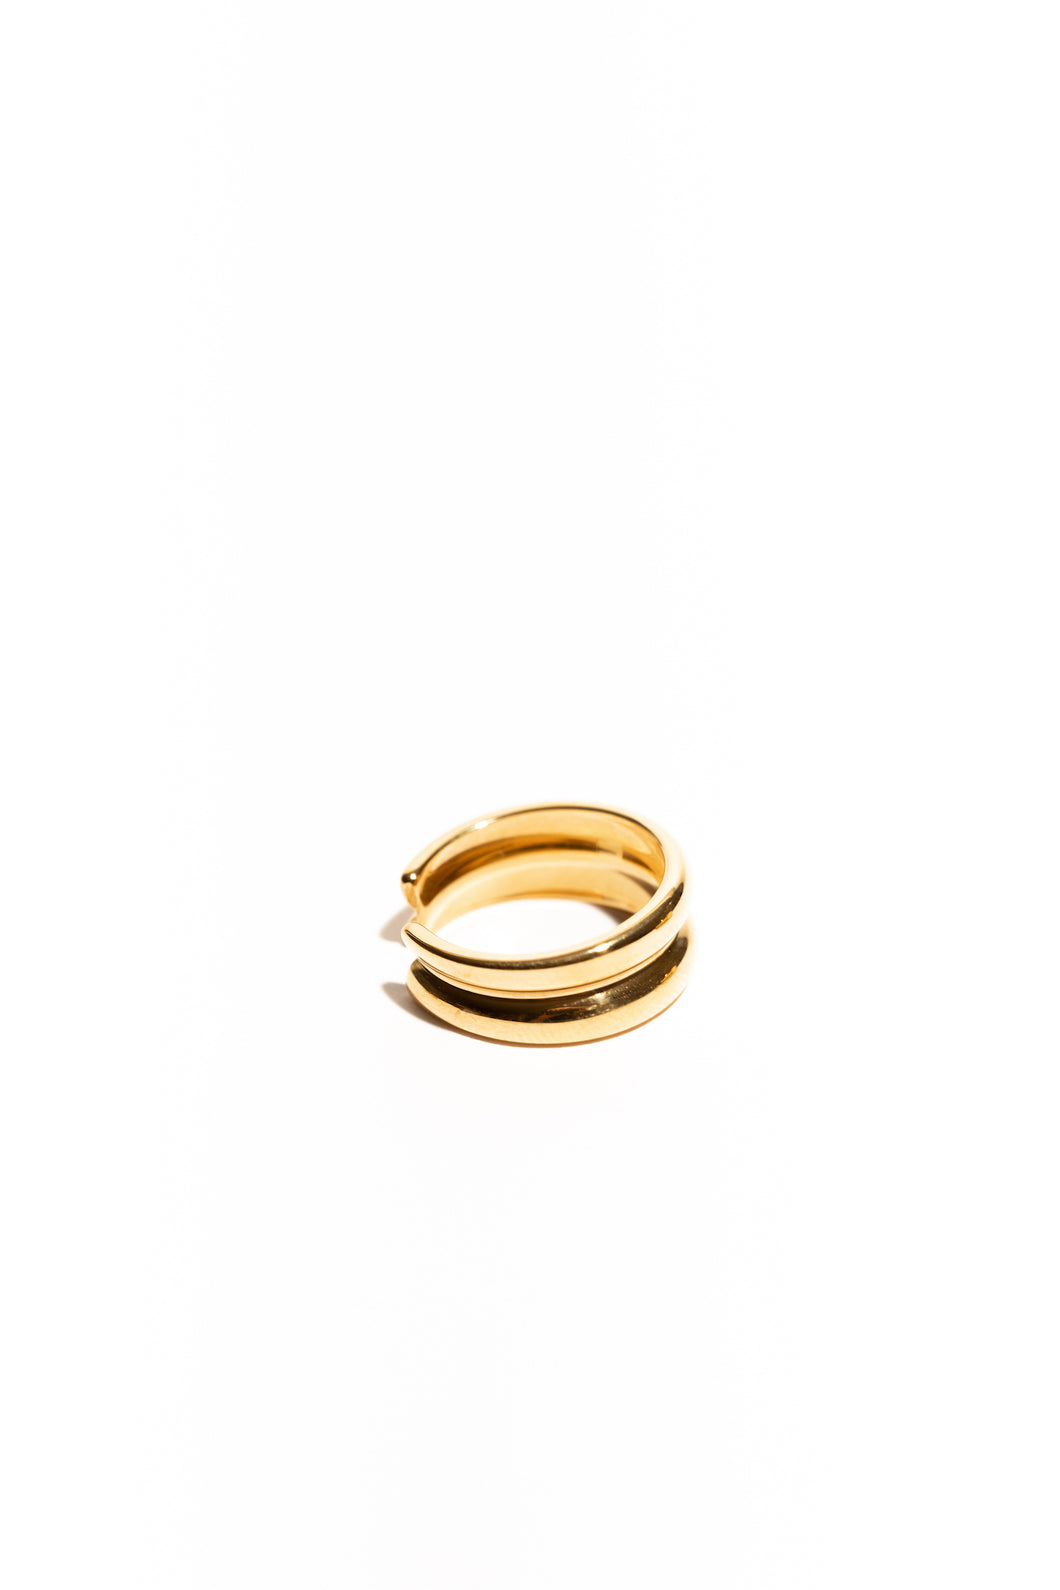 Make A Wish Thin Double Stack Ring - Gold